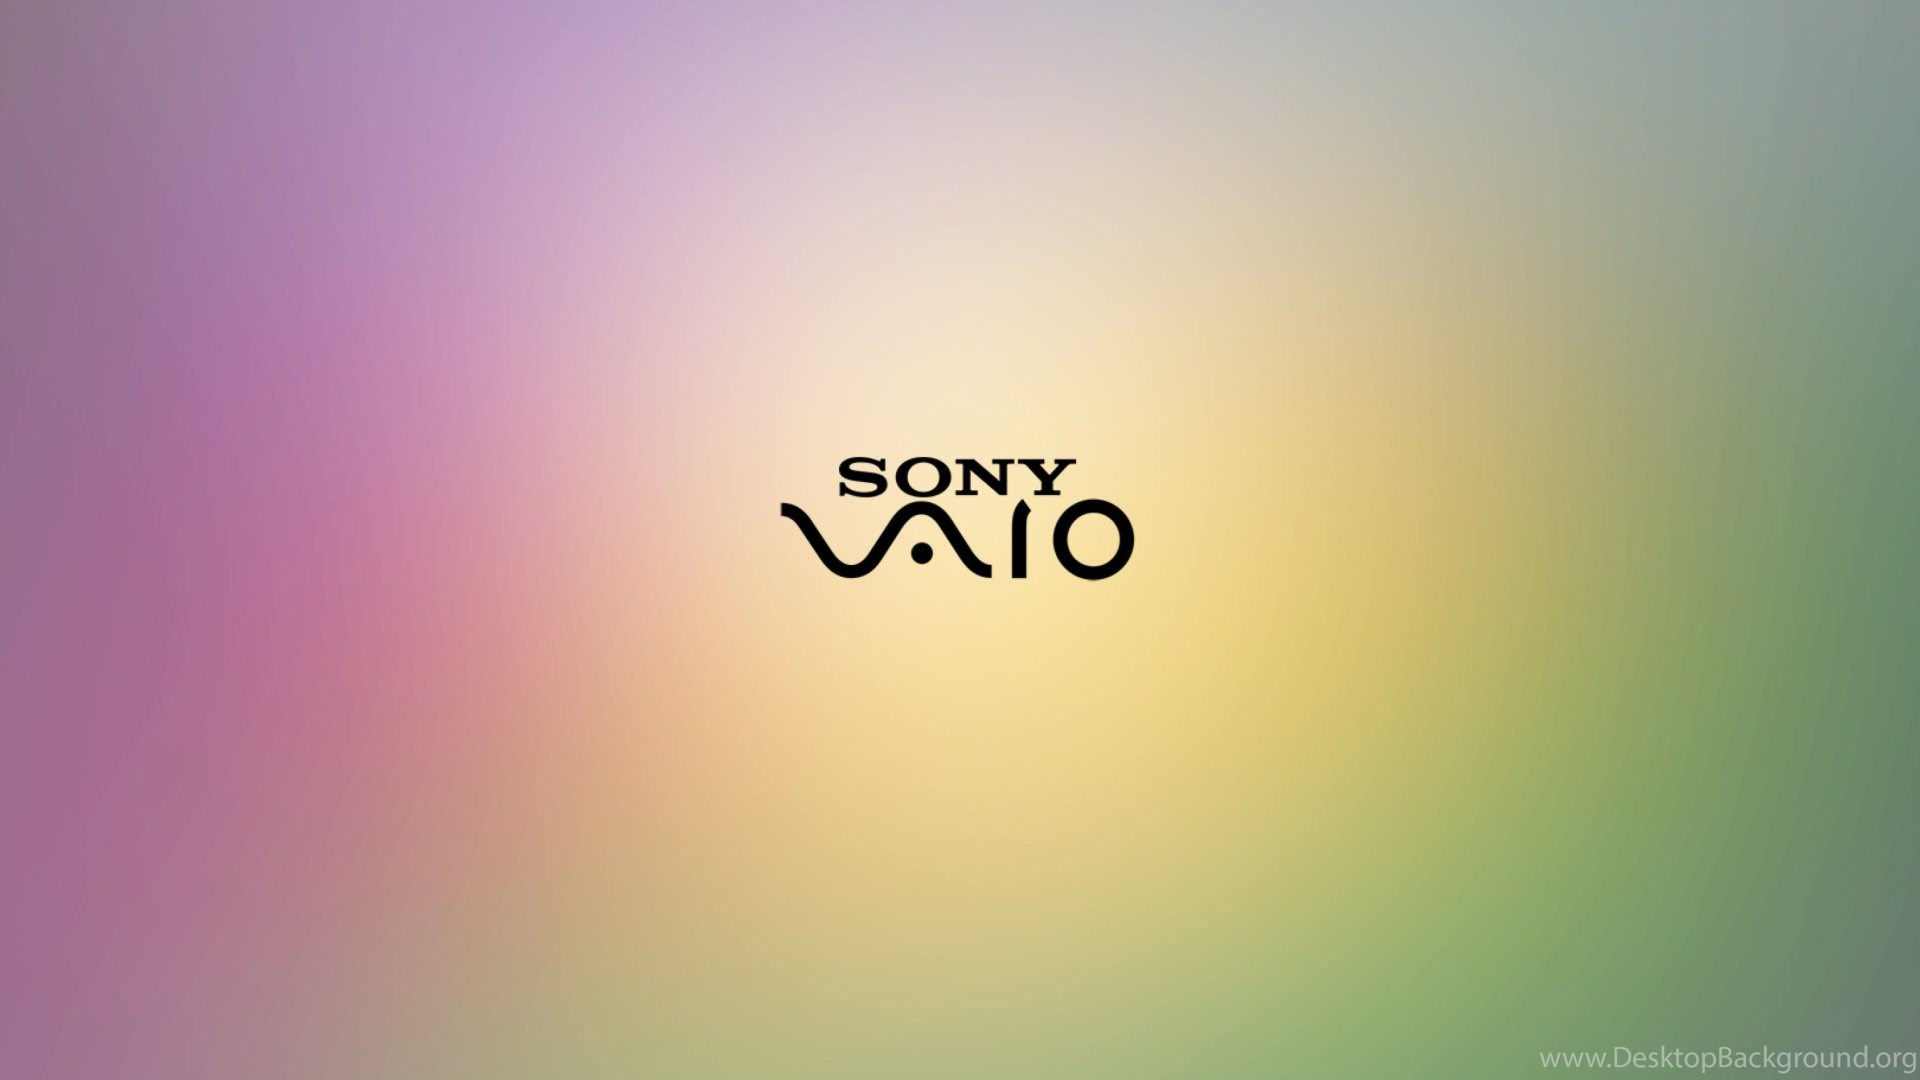 Sony Vaio Wallpapers For Desktop 1920x1080 Full HD Desktop